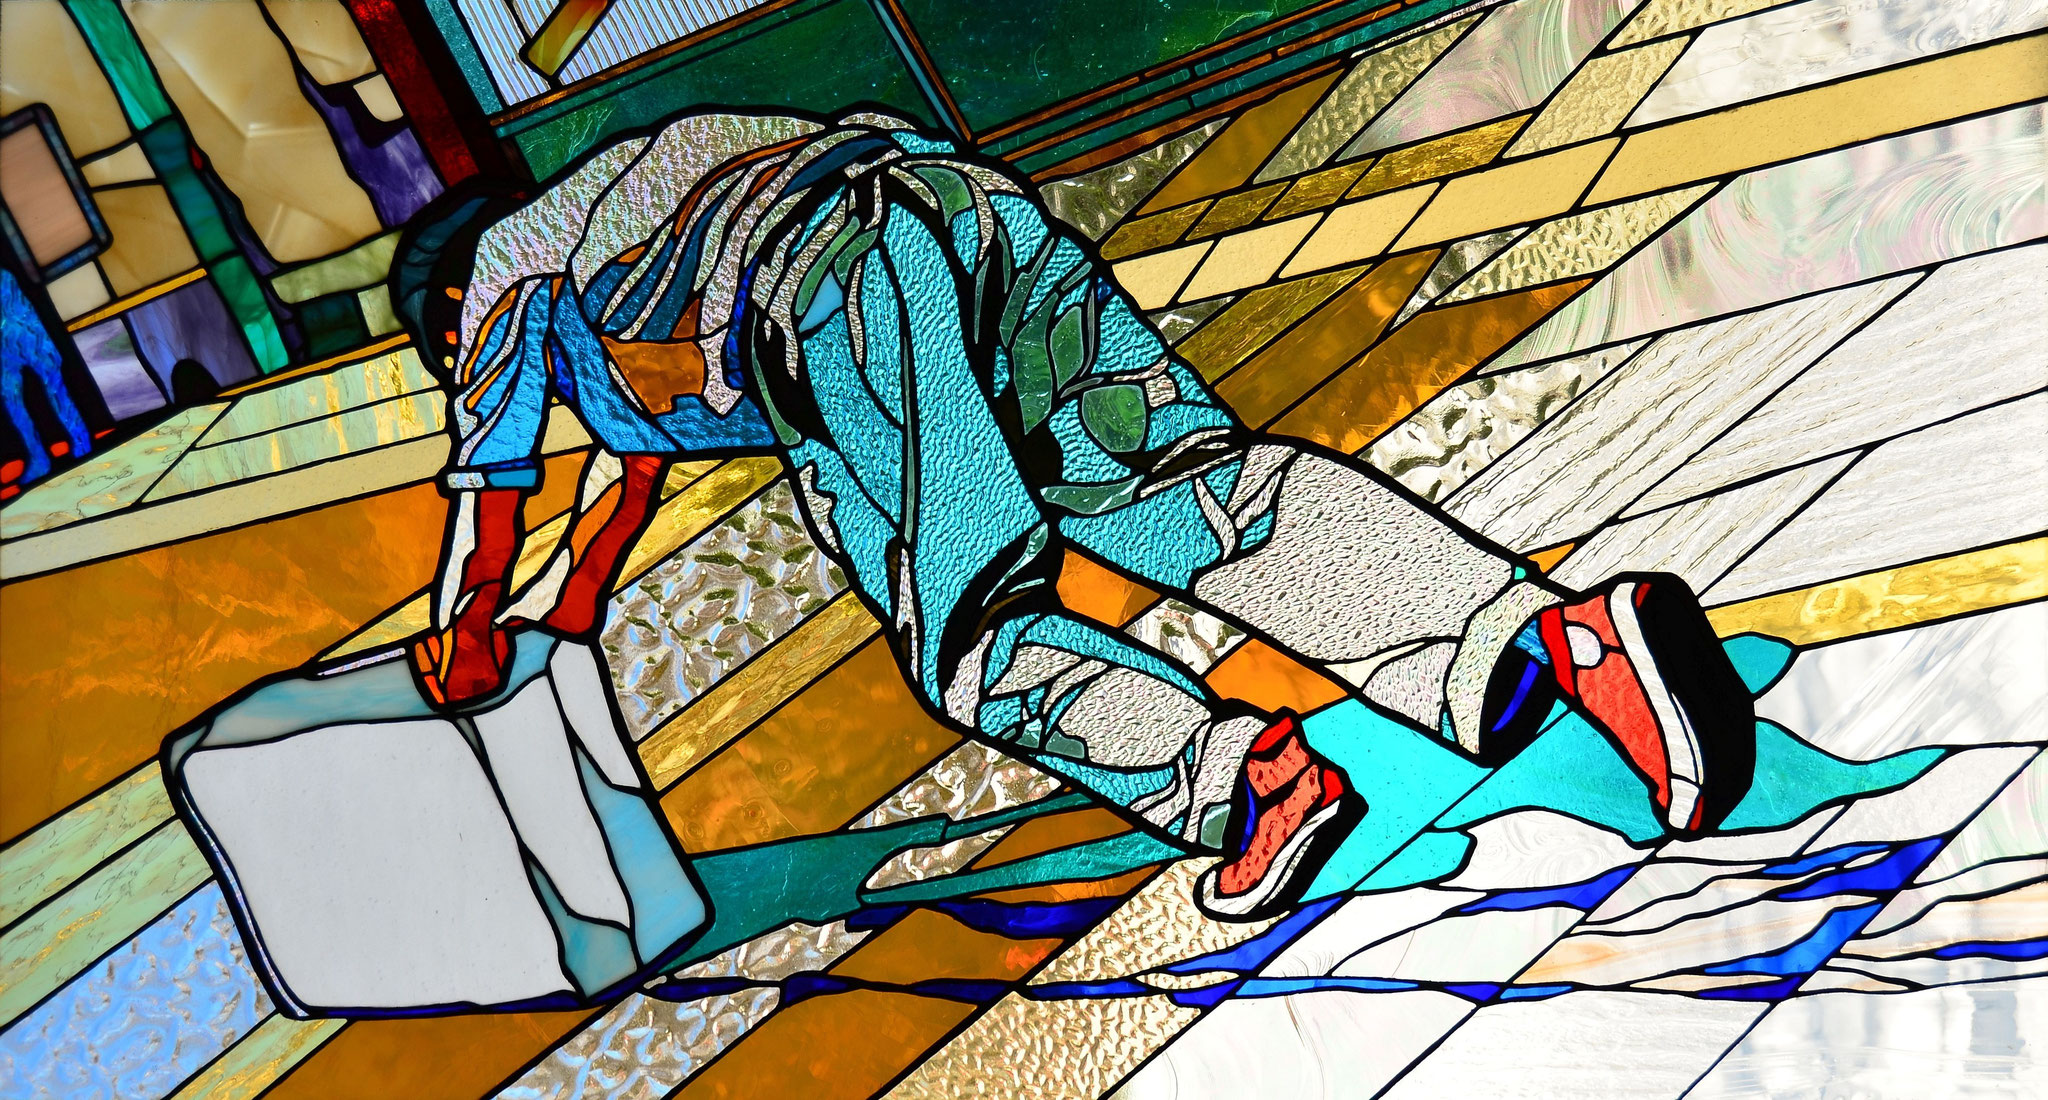 Francis Alys - SOMETIMES MAKING SOMETHING LEADS TO NOTHING 46 x 25 inches stained glass_photo by Lloyd Howell